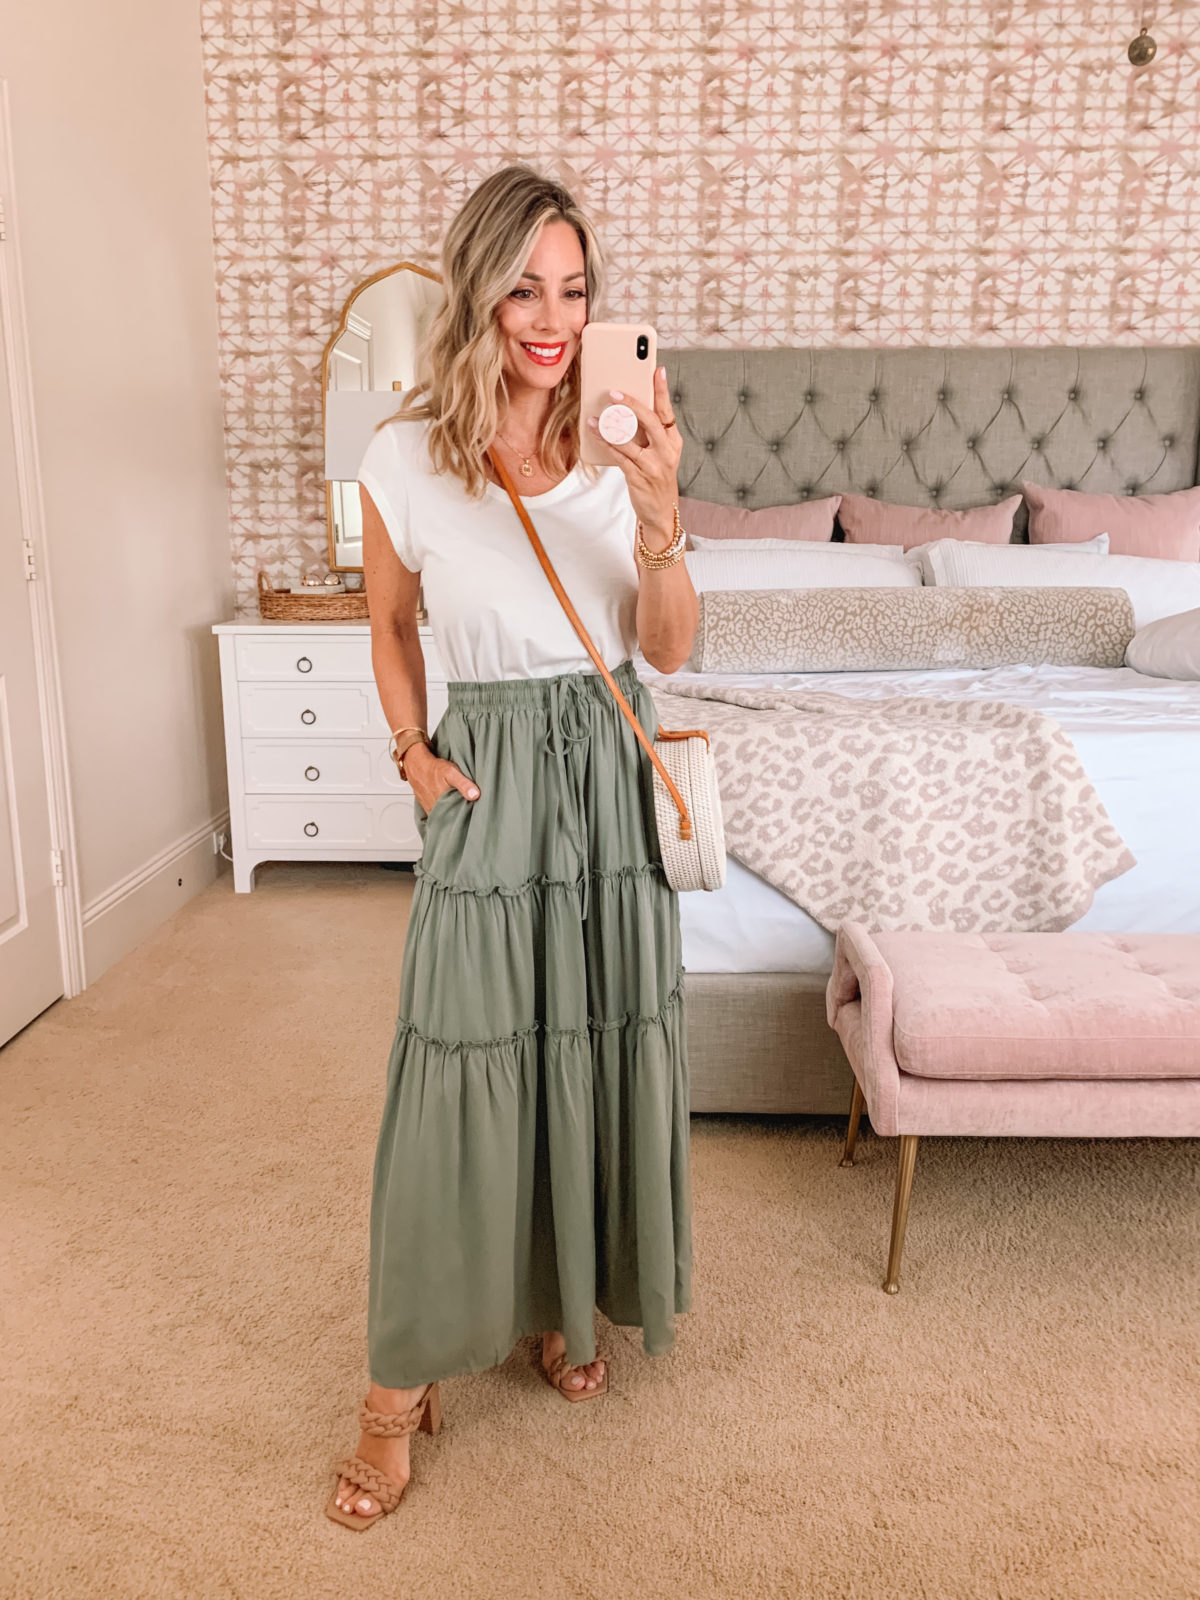 Amazon Fashion Faves, White Tee and Maxi Skirt with Sandals and Crossbody